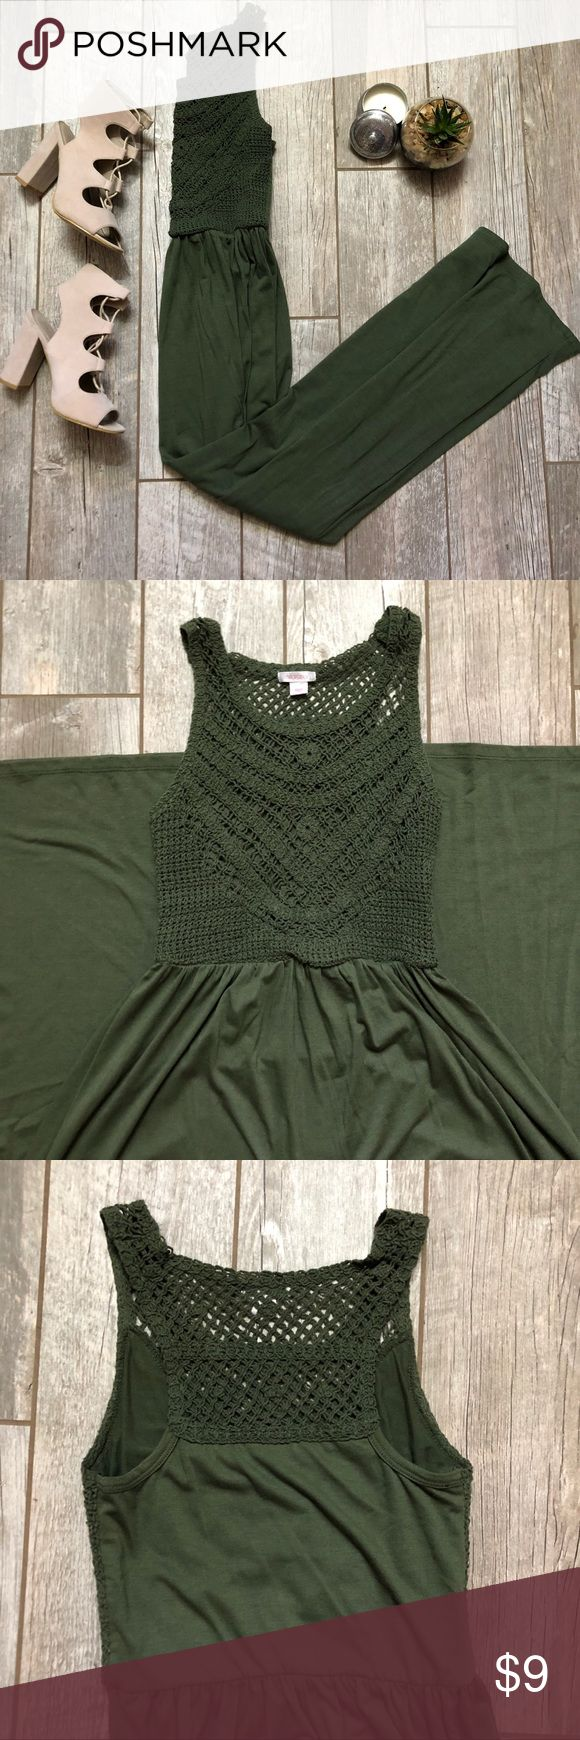 """Olive Green Crochet Top High Neck Maxi Stretchy fabric and waist. Super soft! Worn once or twice. Very gently used. Length works on a 5' 1"""" frame with flats - perfect for someone petite! Dresses Maxi"""